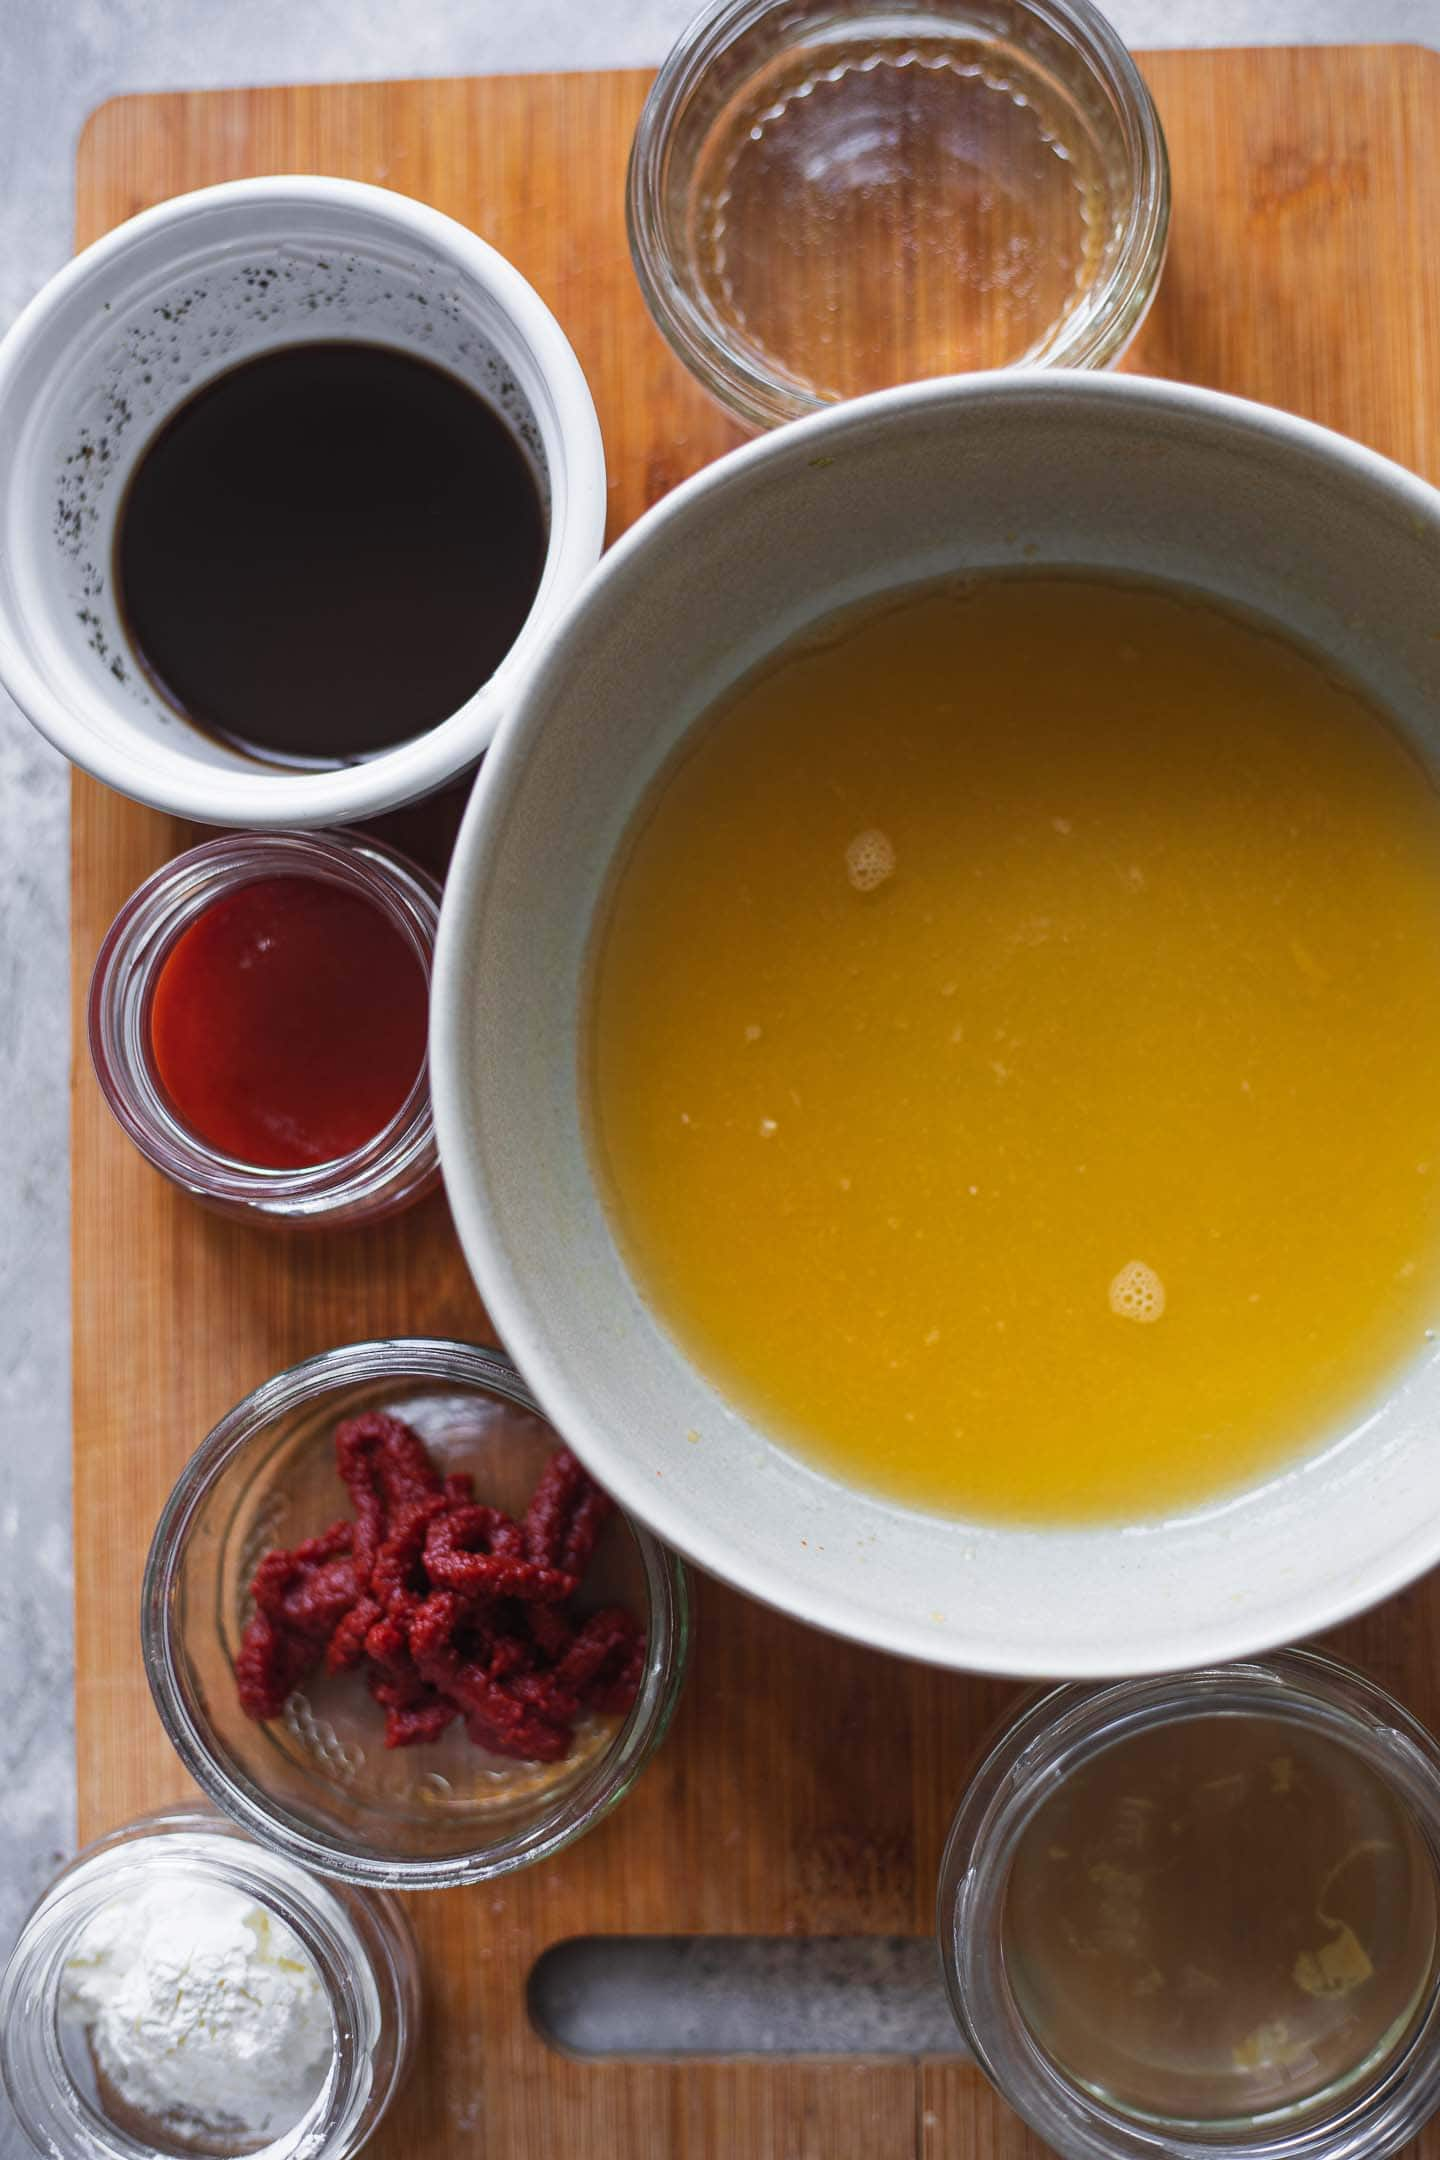 Ingredients for a sweet and sour sauce